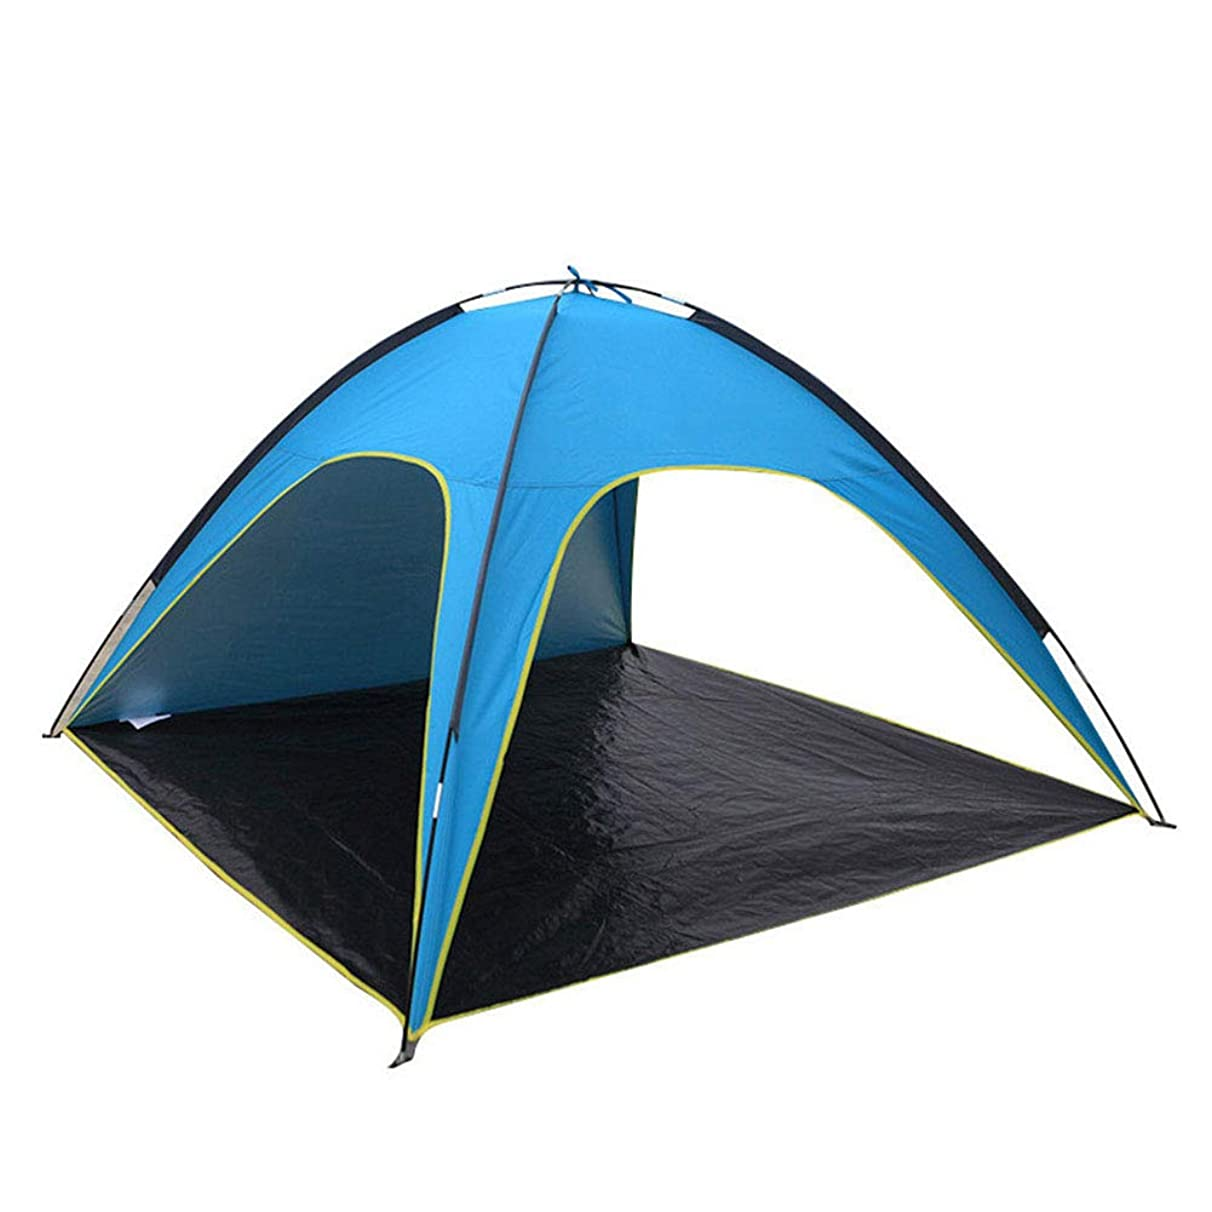 WE&ZHE Outdoor Folding Telescopic Sunscreen Canopy - Beach Tent Sun Shelter and Lightweight Sun Shade Tarp for Camping Family Picnic, Waterproof and Windproof 3 Person-4 Person Tent